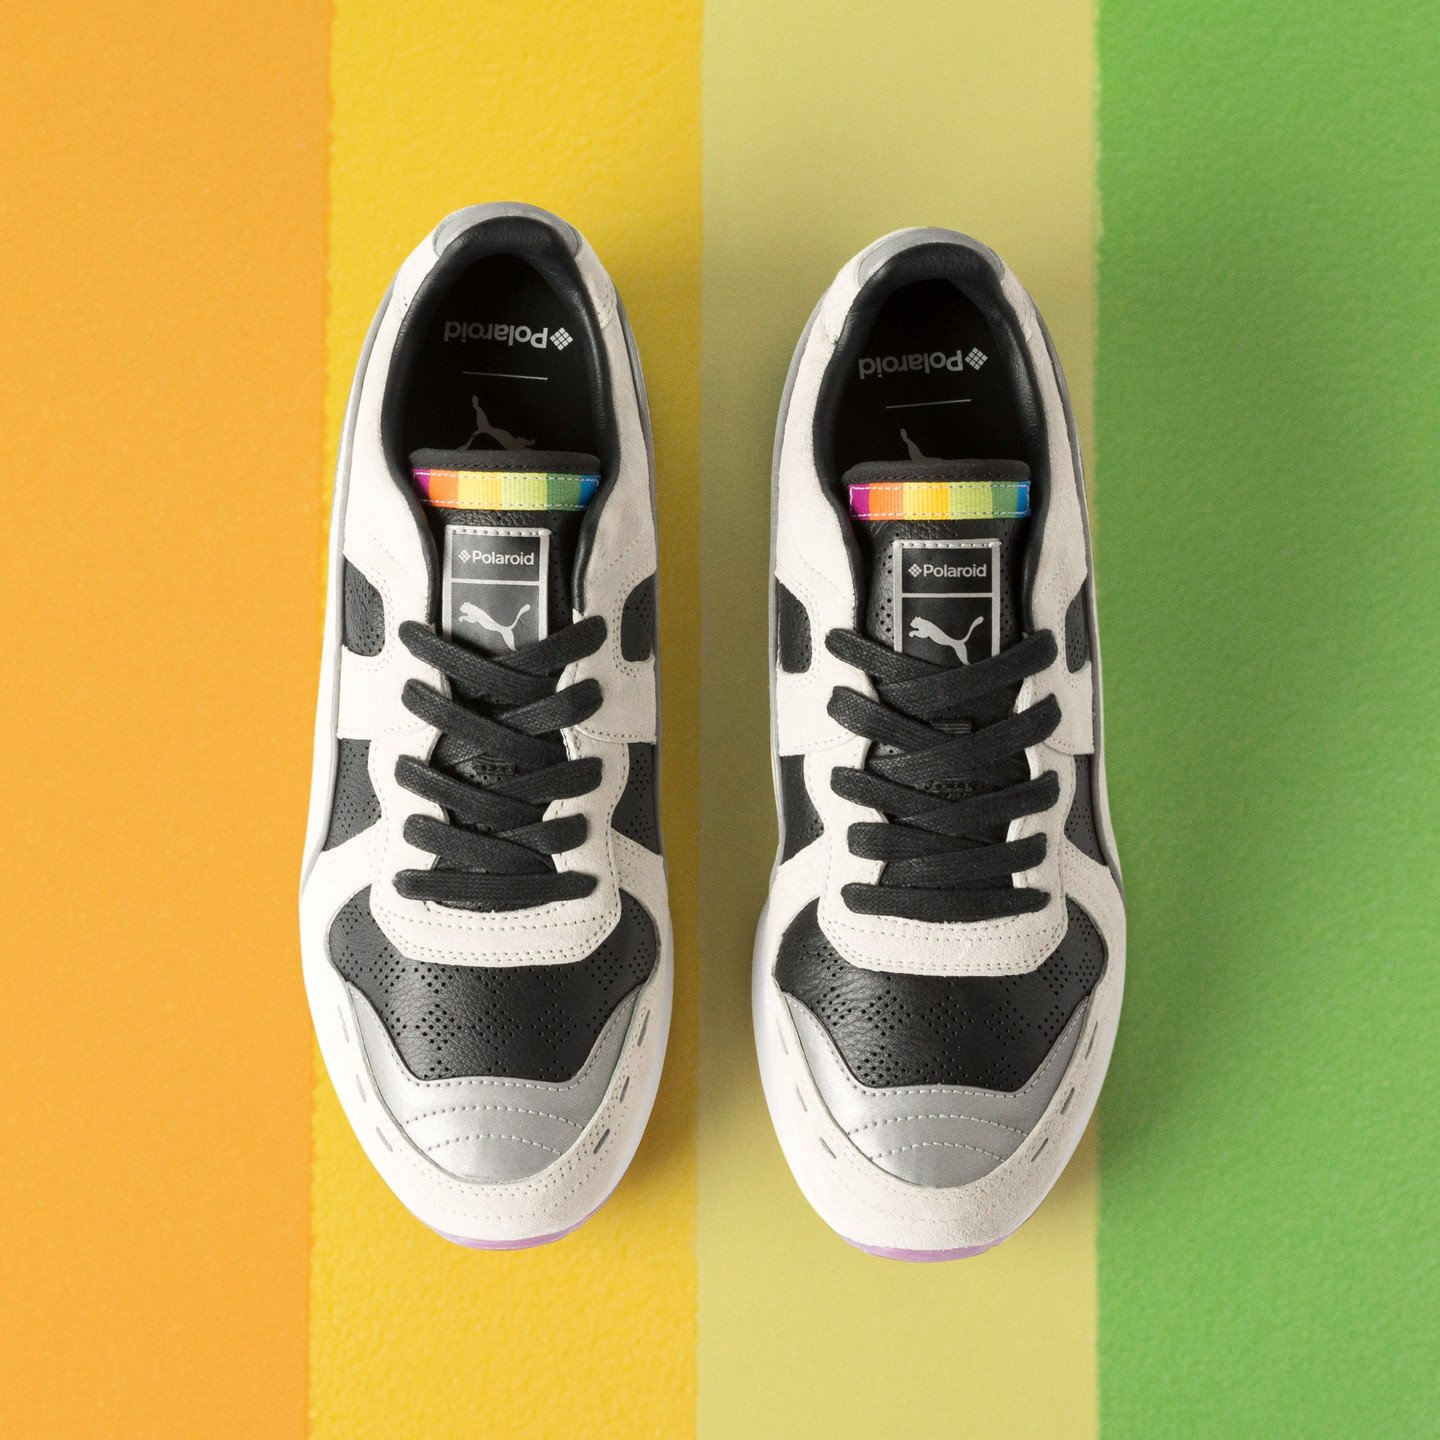 Puma RS-100 x Polaroid Marshmallow / Puma Black 368456 01